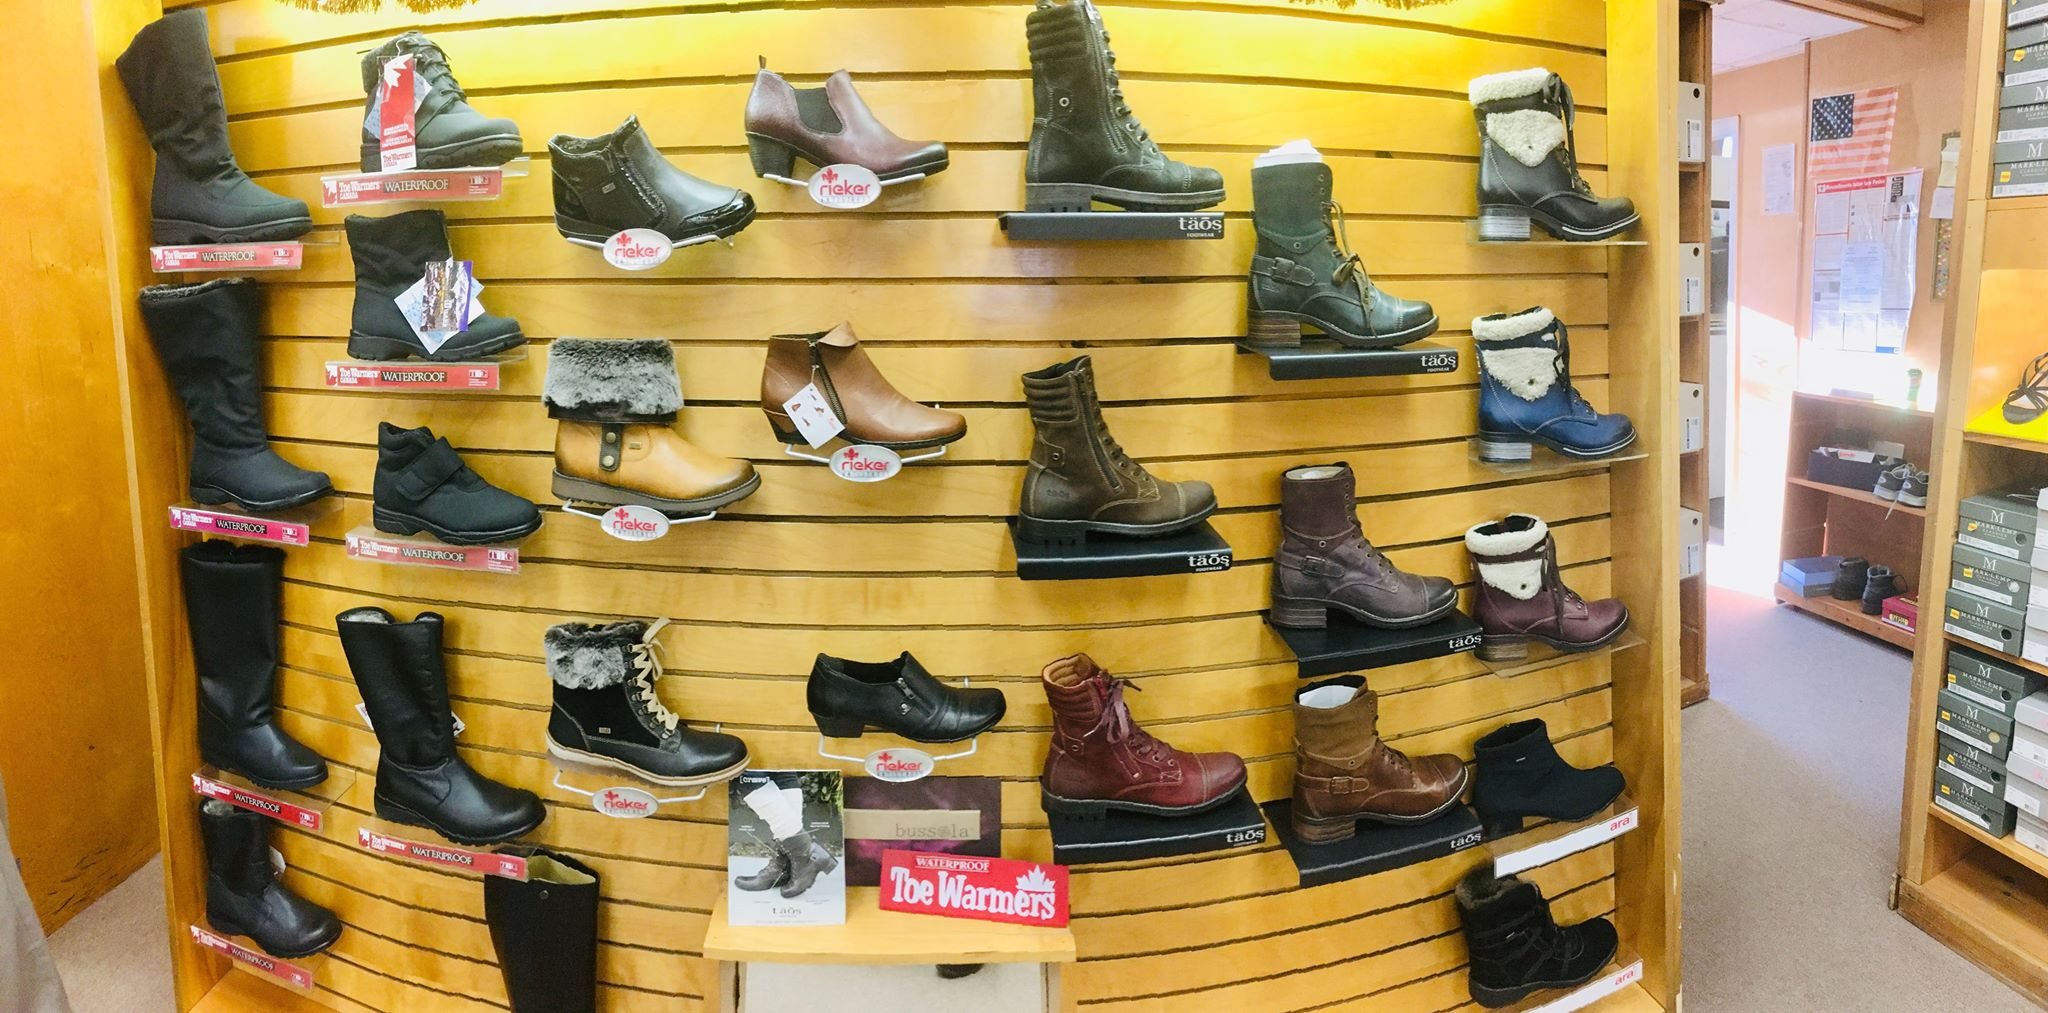 Panza Shoes - Meet-and-greet the wonderful owners and manger of one of Framingham's oldest businesses, Panza Shoes. Two $25 gift certificates will be available at the Downtown Celebration.